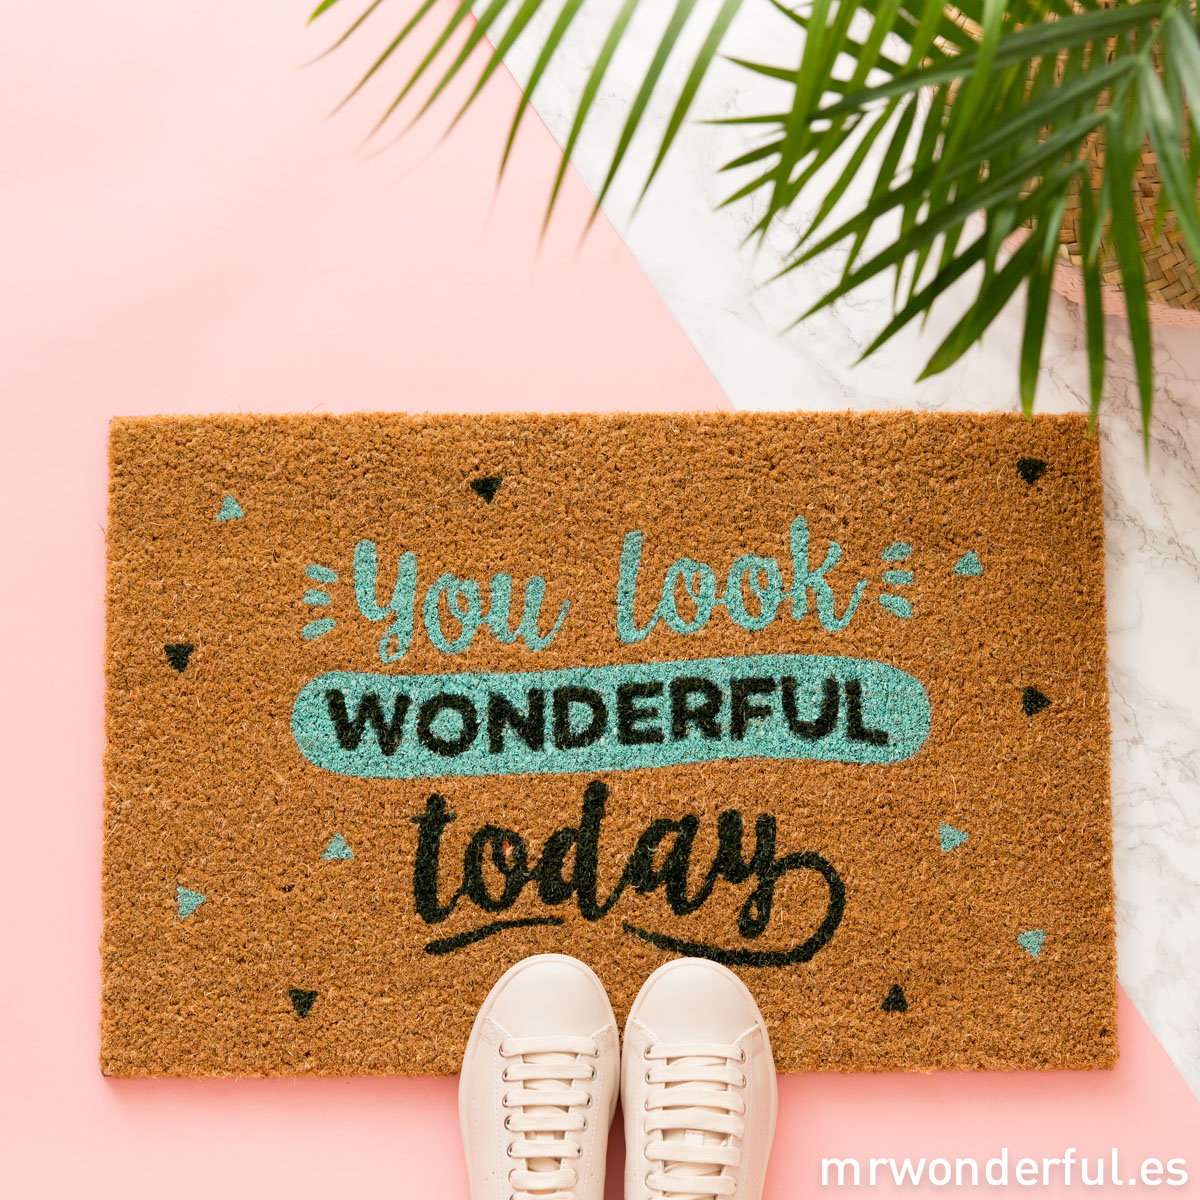 mrwonderful_8435460708104_WOA3731EN_Felpudo-You-look-wonderful-today-ESP-07